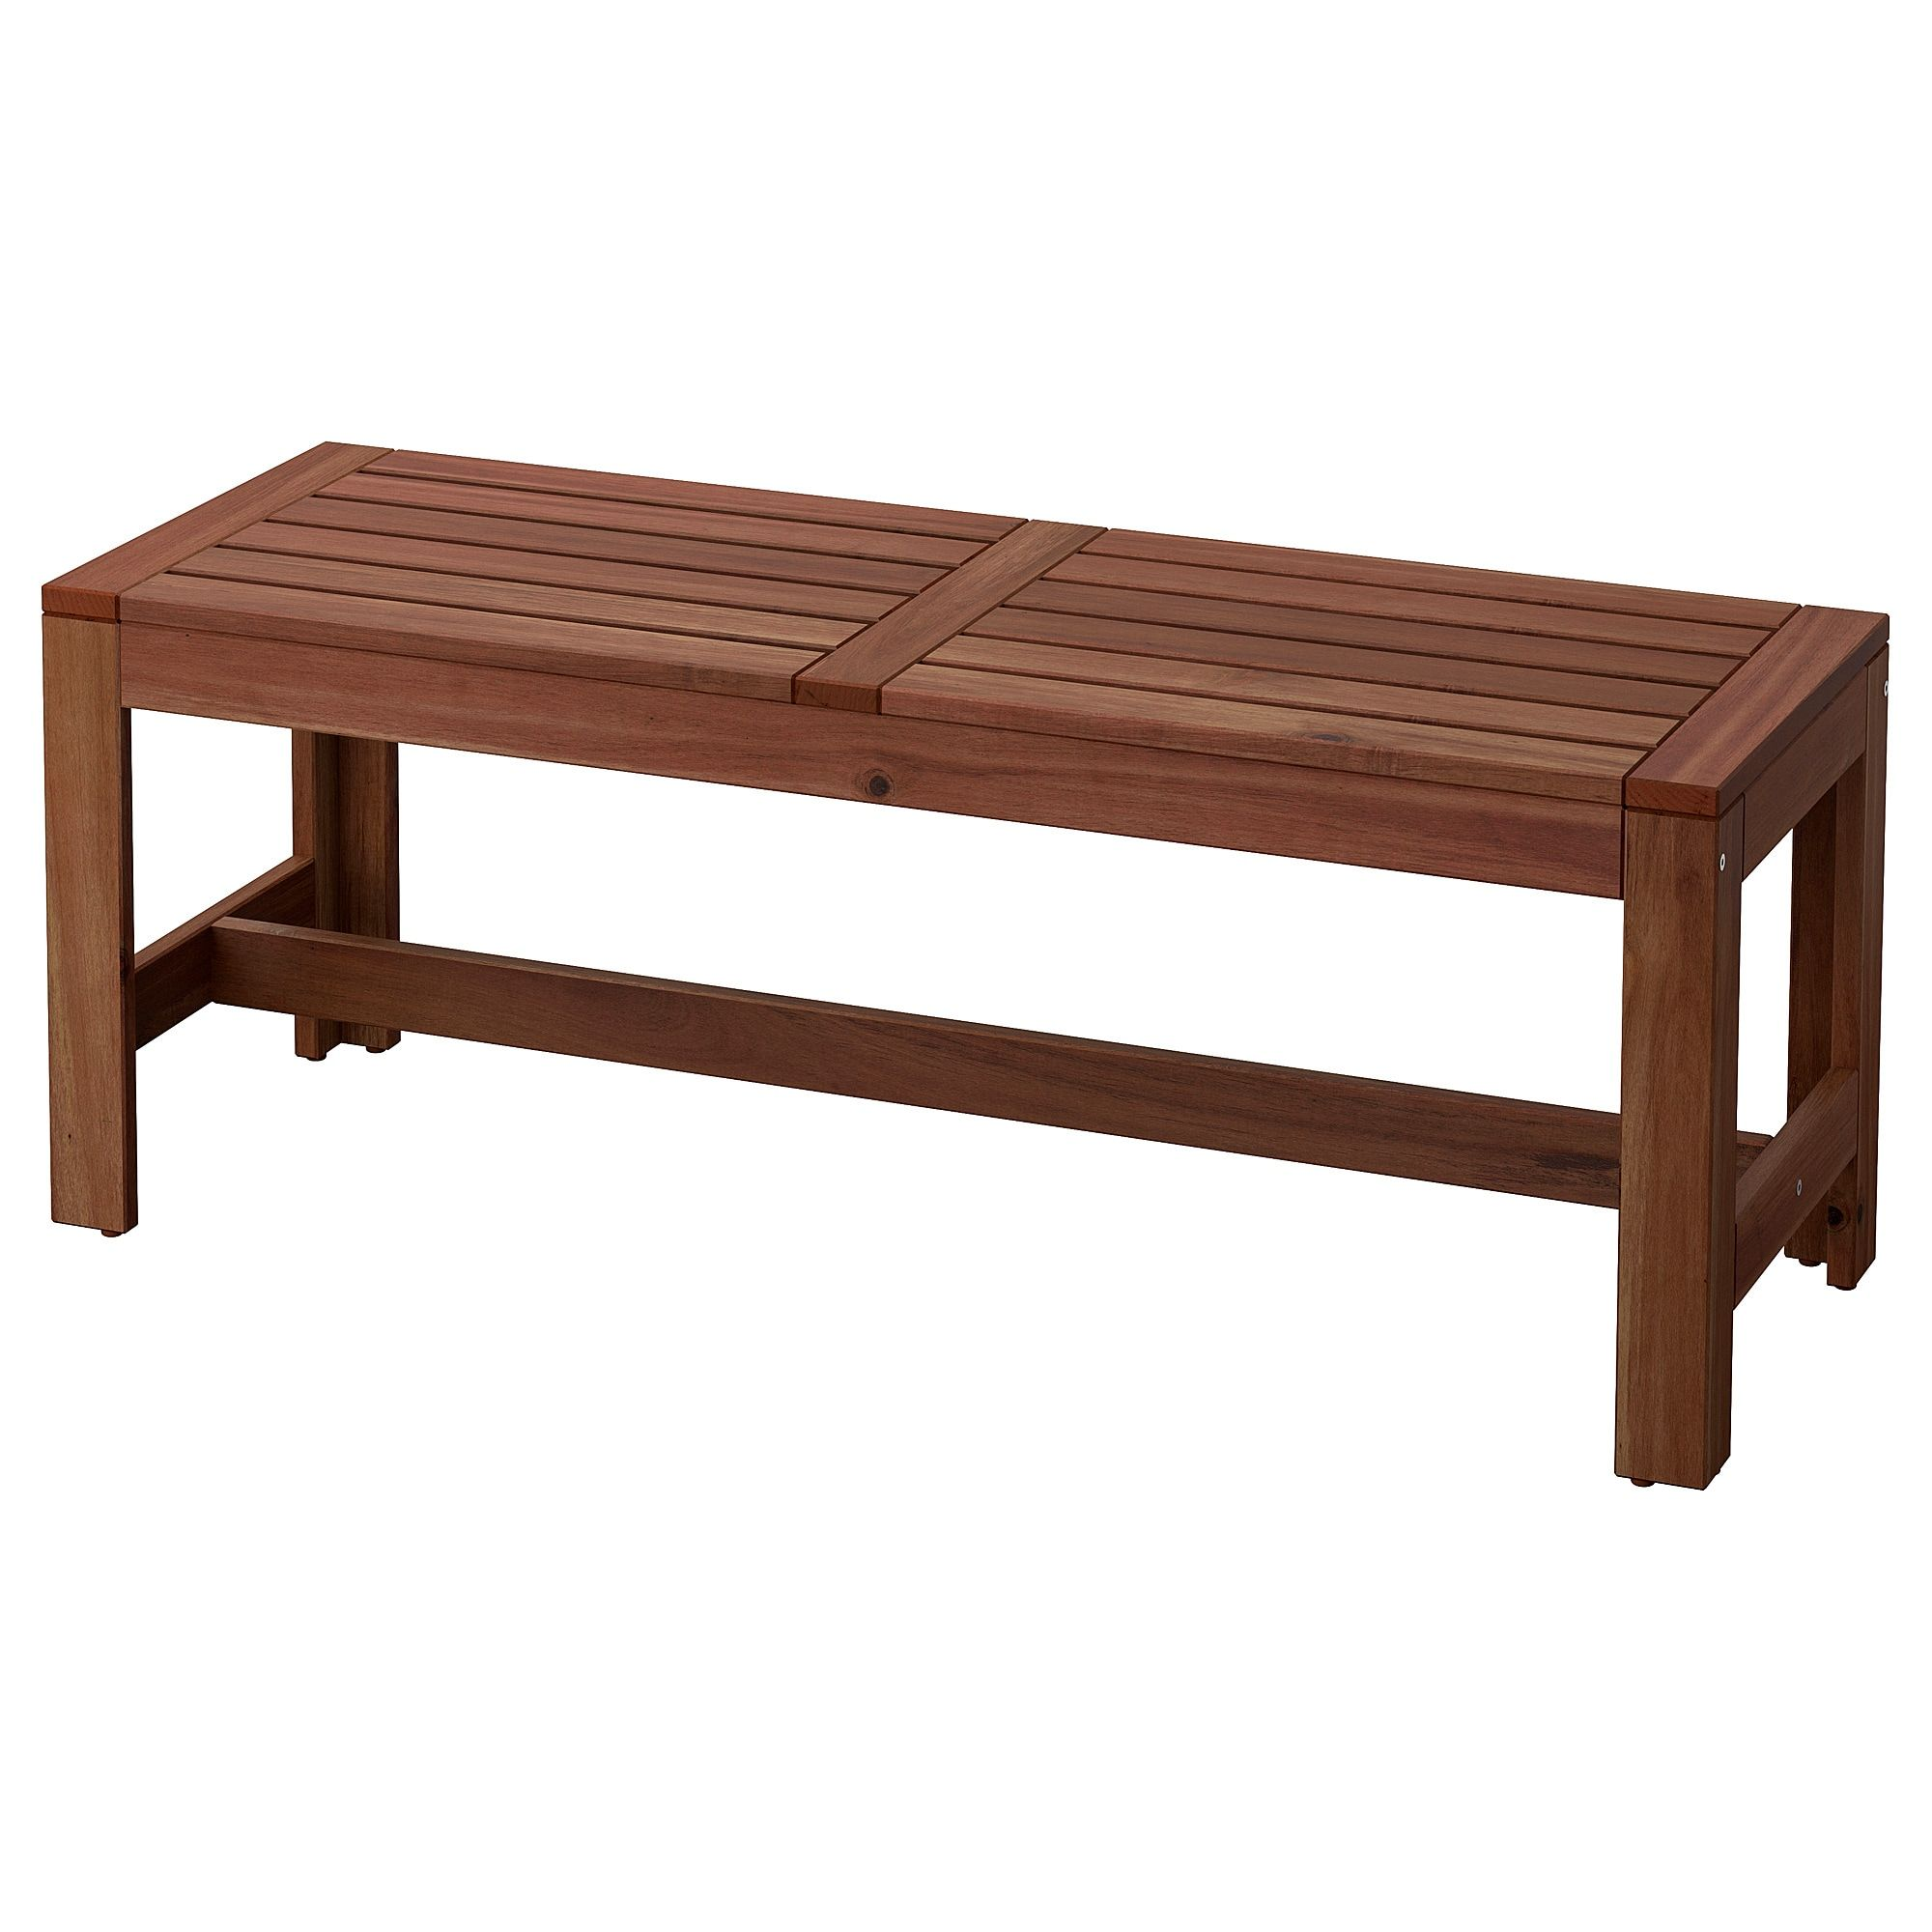 Applaro Bench Outdoor Brown Stained Brown 44 7 8 Ikea